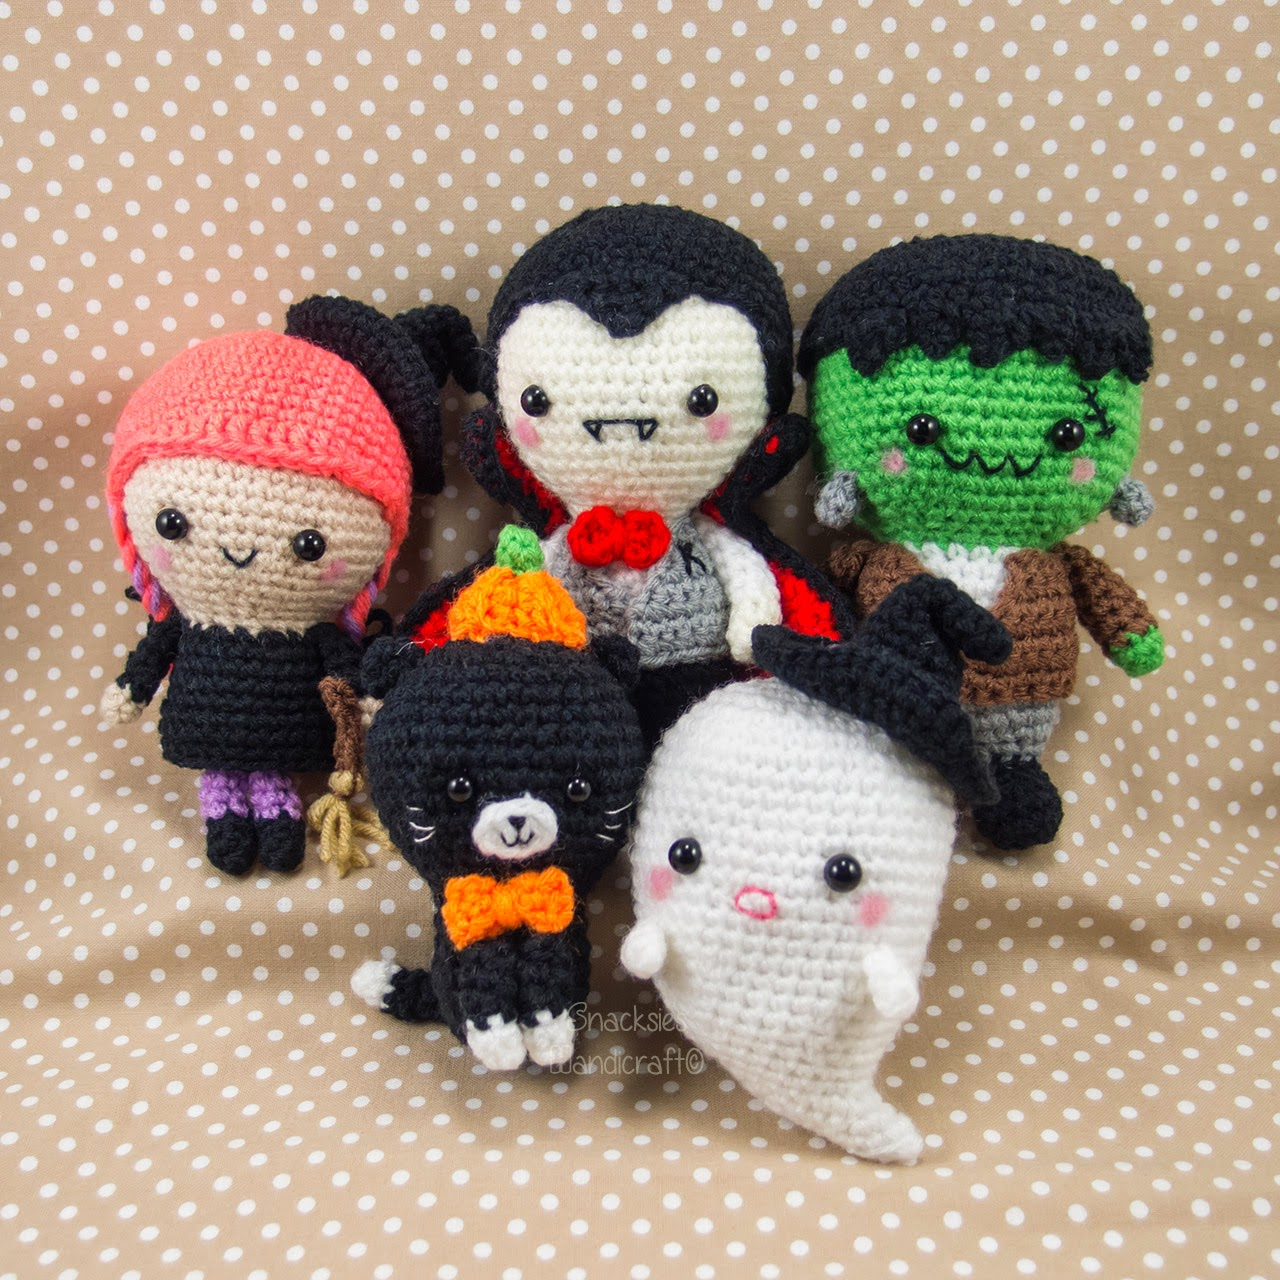 Free Crochet Patterns For Halloween : Halloween Set ~ Snacksies Handicraft Corner